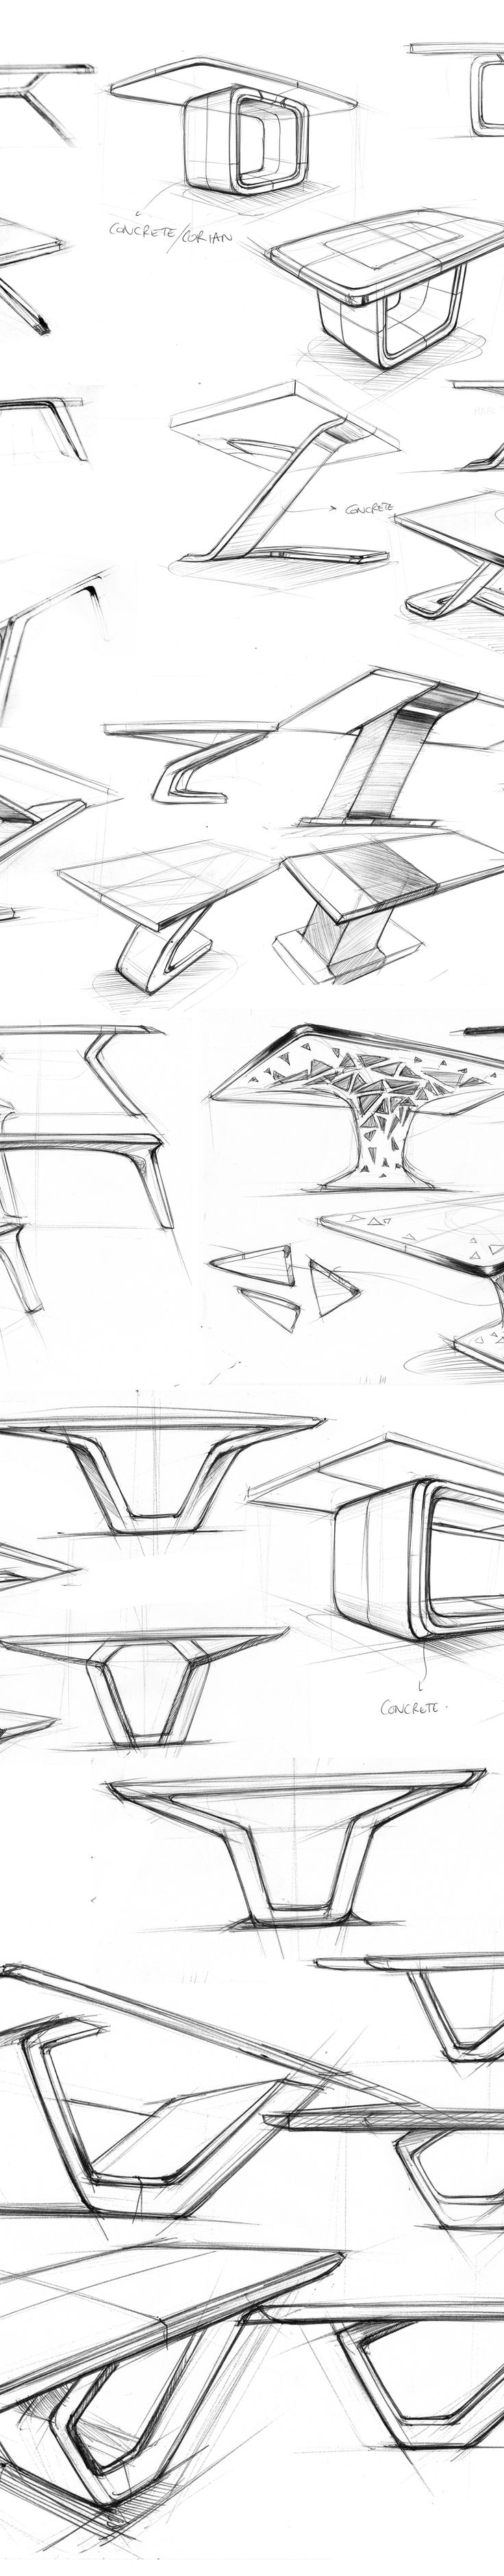 http://marctran.com/125302/2467090/industrial-design/table-pool-table-sketches-wip-2014